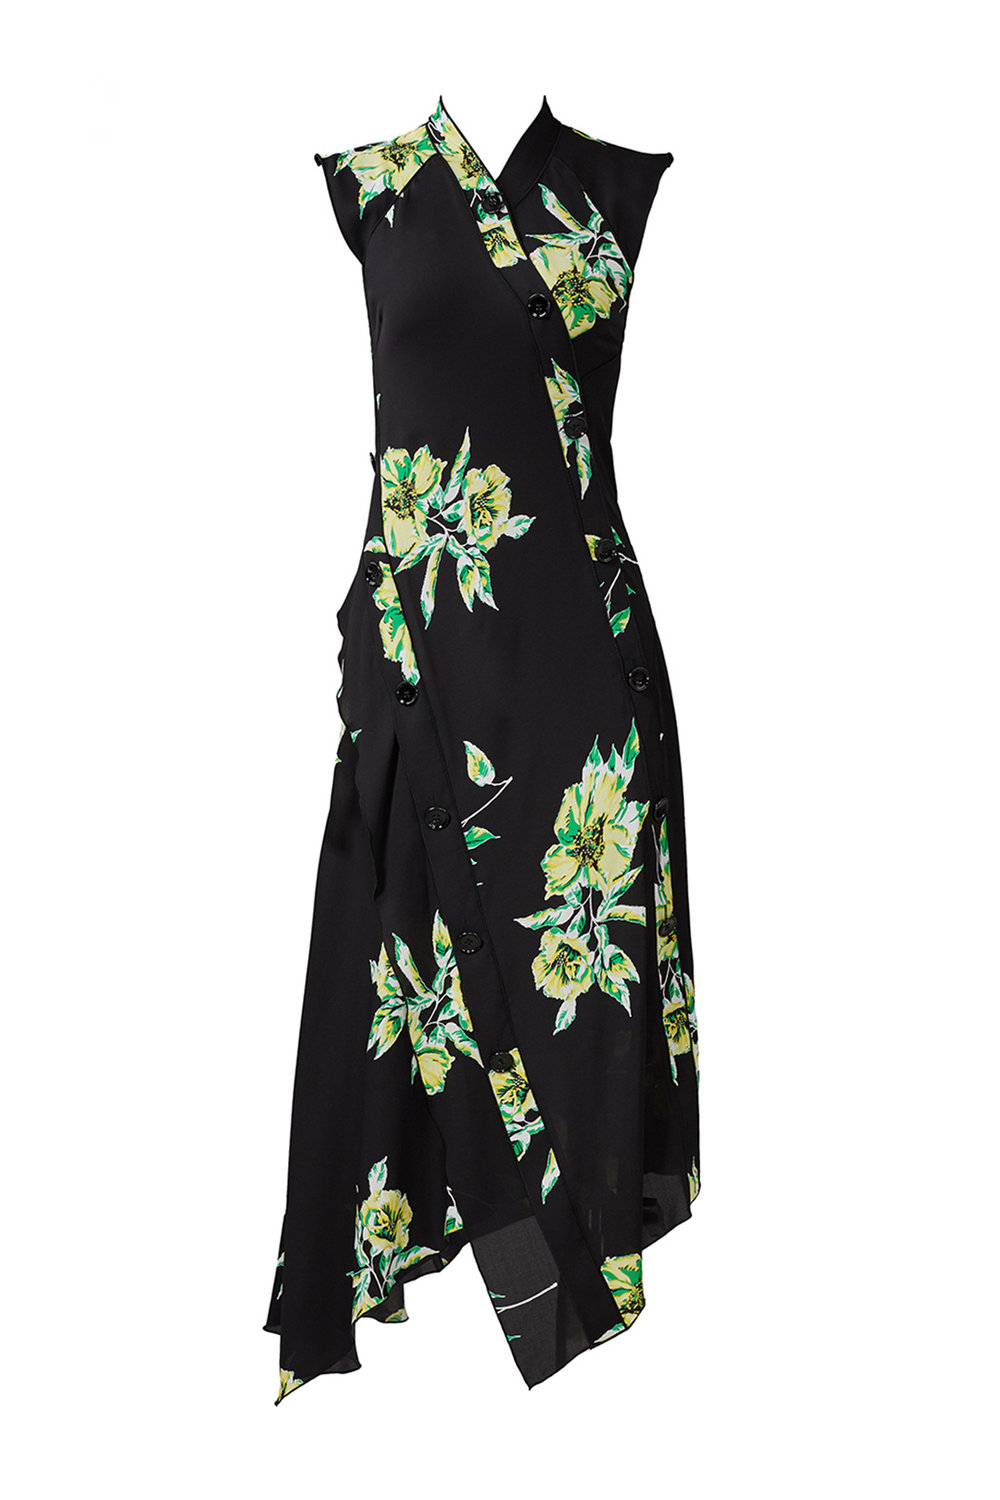 Black Floral Asymmetrical Hem Proenza Schouler Pansy Long Sleeve Dress from Rent the Runway | Top US fashion blog, The Borrowed Babes features the Best Spring Floral Dresses